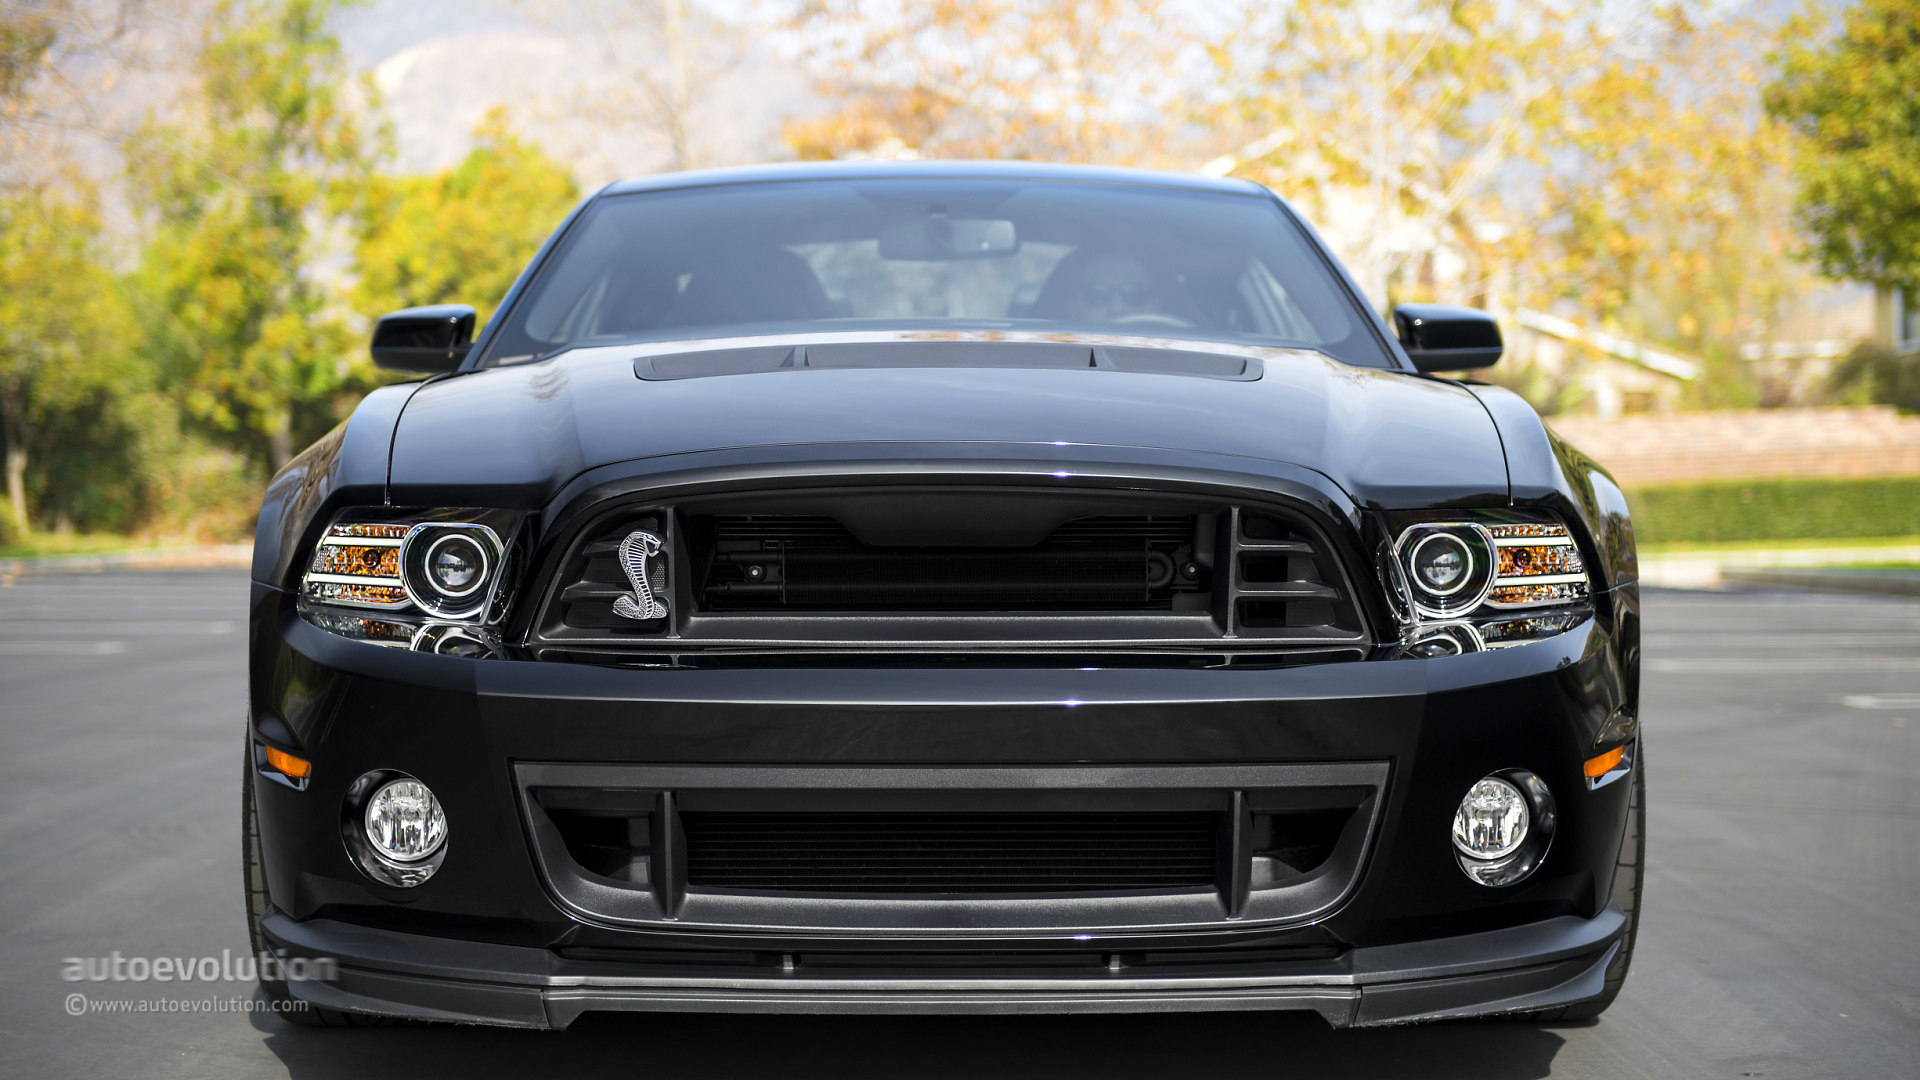 2014 ford mustang shelby gt500 review autoevolution. Black Bedroom Furniture Sets. Home Design Ideas